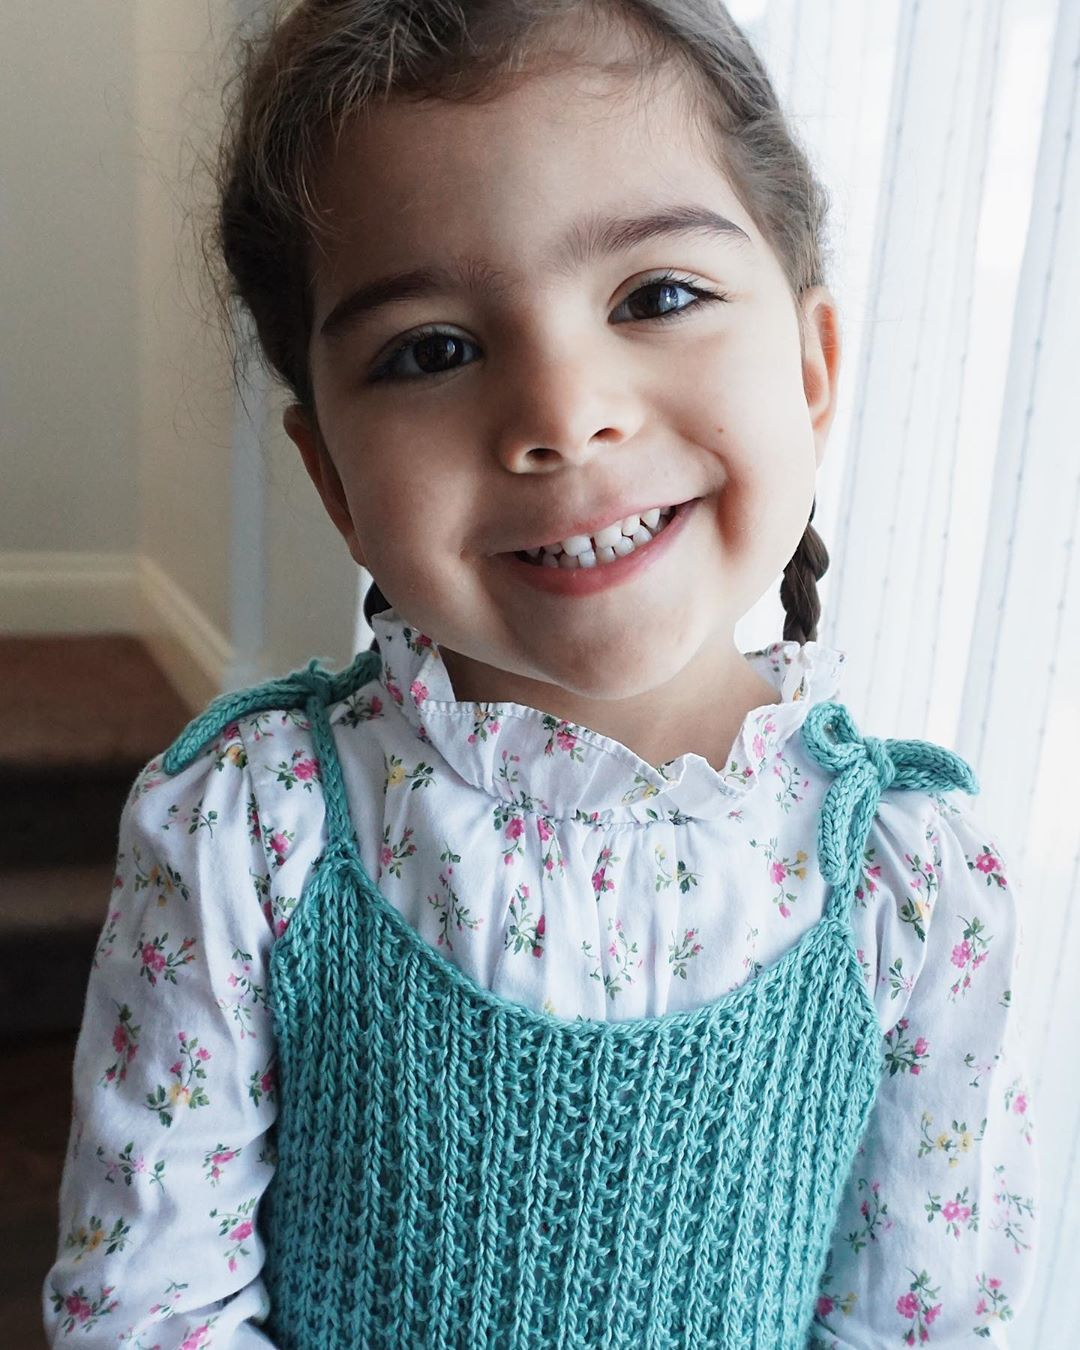 Made A New Dress For Mel To Wear To Chur Babyknits - Knit Dress